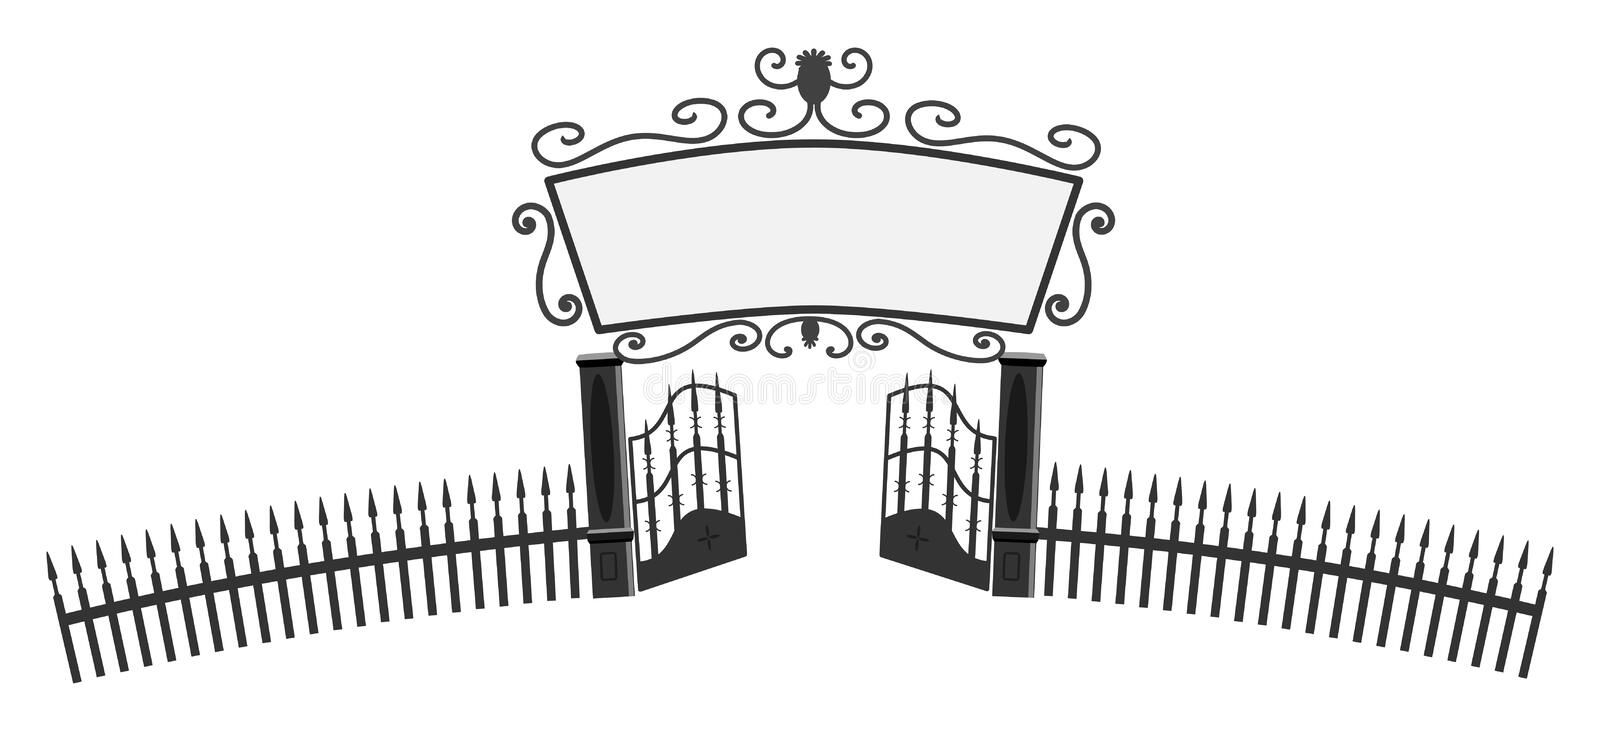 Entrance gate. With big sign on top royalty free illustration